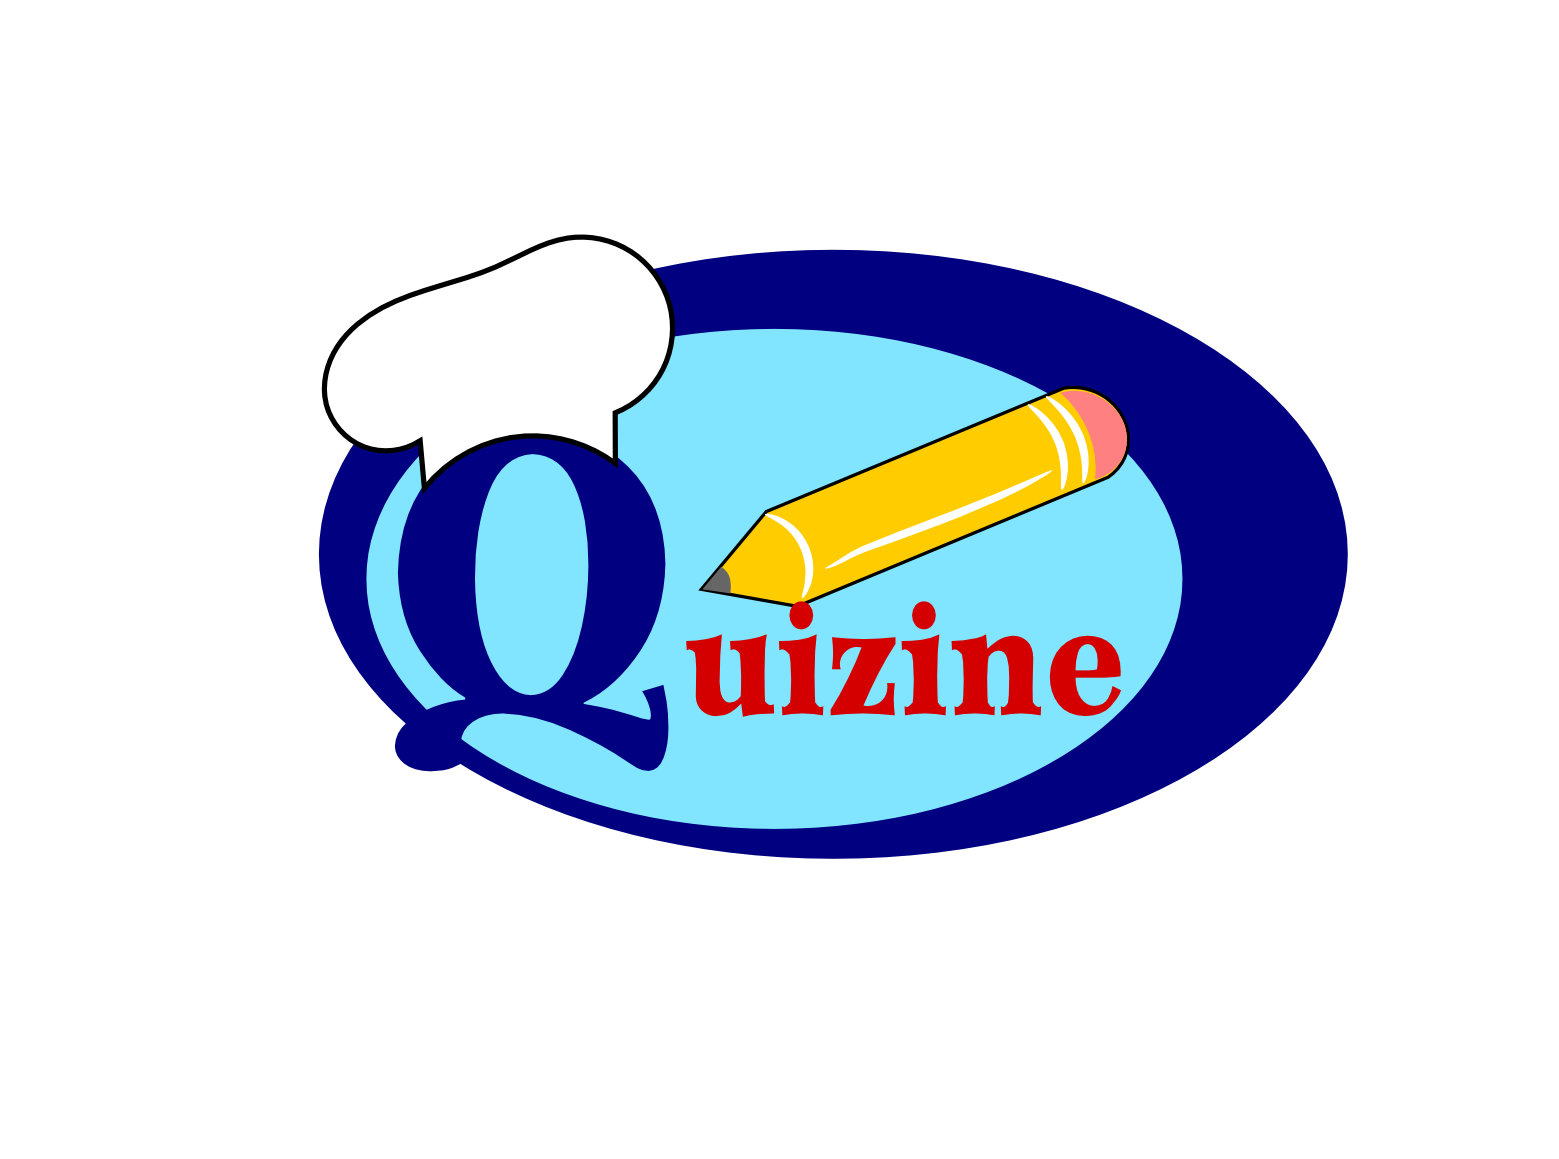 Logo Design by Joseph calunsag Cagaanan - Entry No. 21 in the Logo Design Contest Quizine Logo Design.